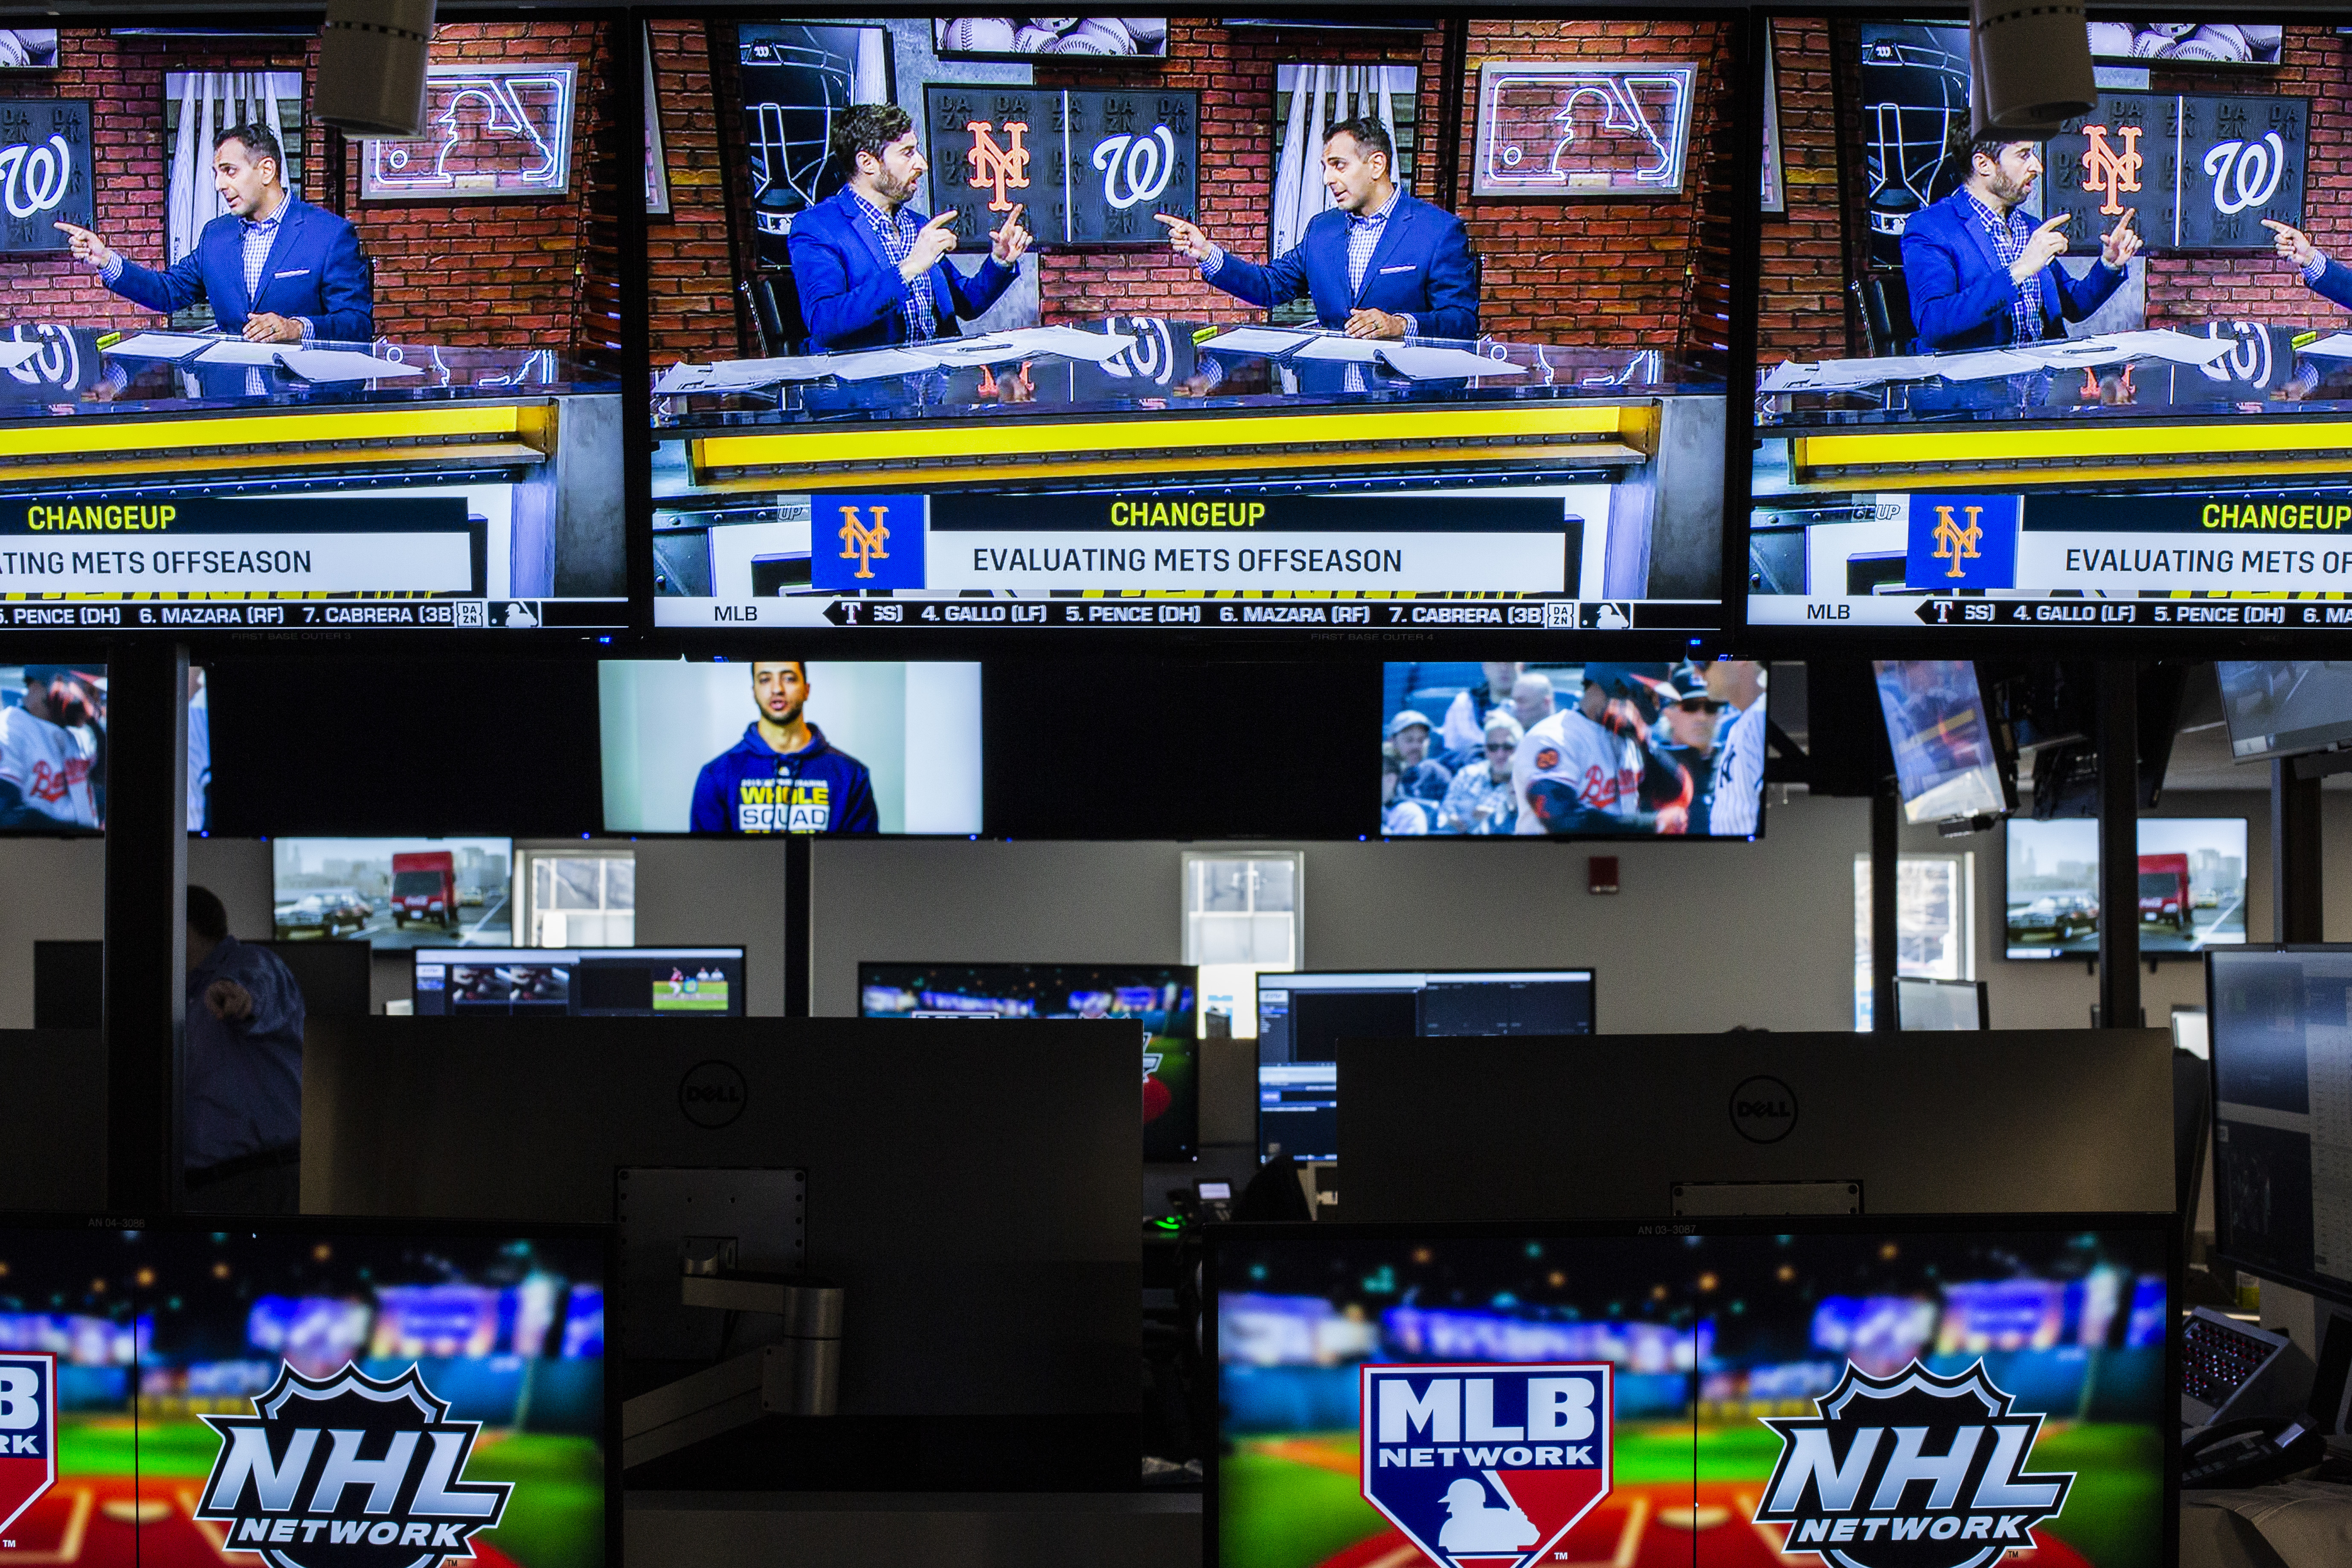 DAZN's baseball show is RedZone for MLB, and a test for the